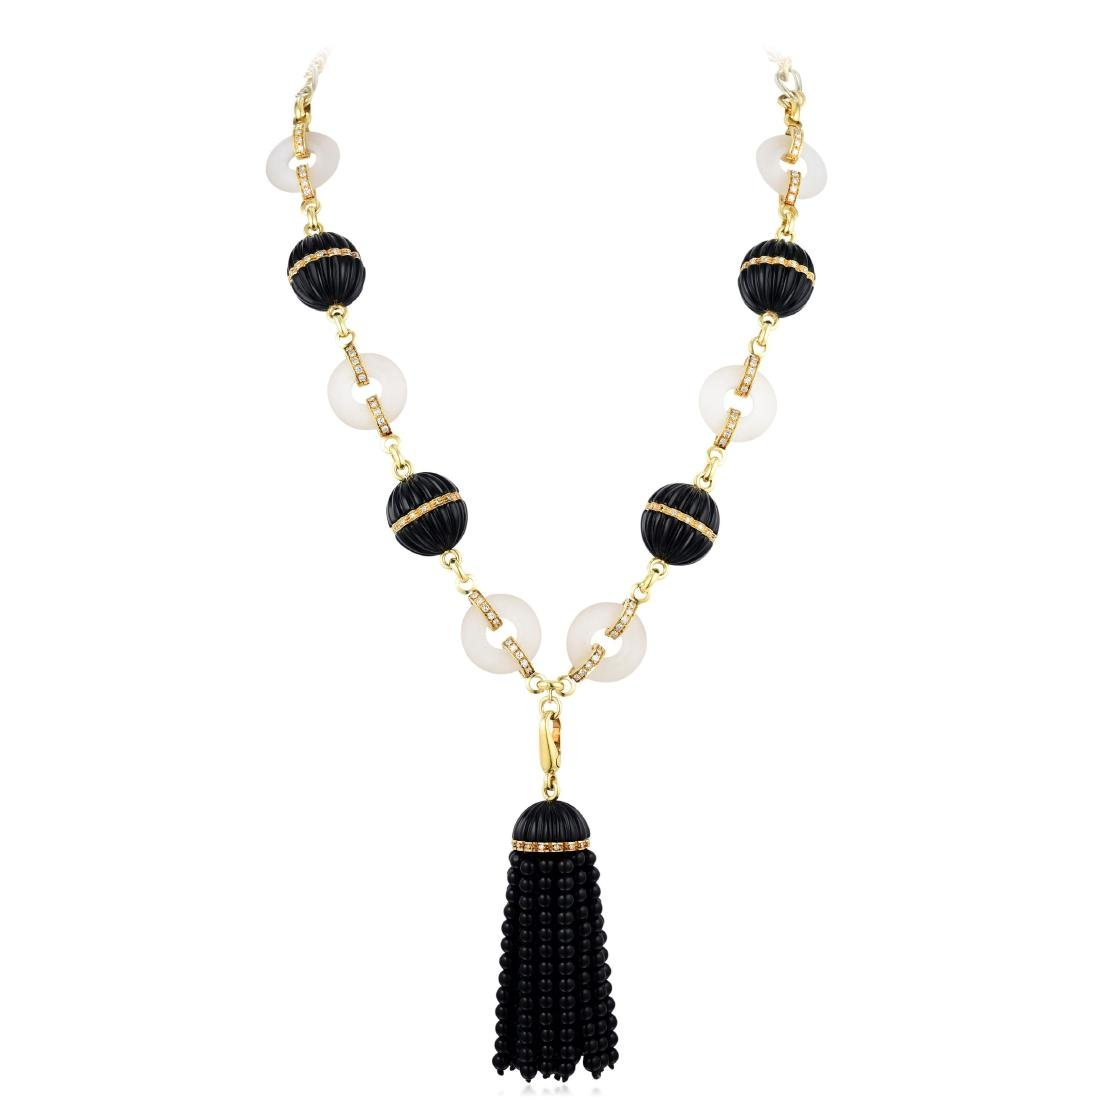 A Rock Crystal and Onyx Diamond Necklace